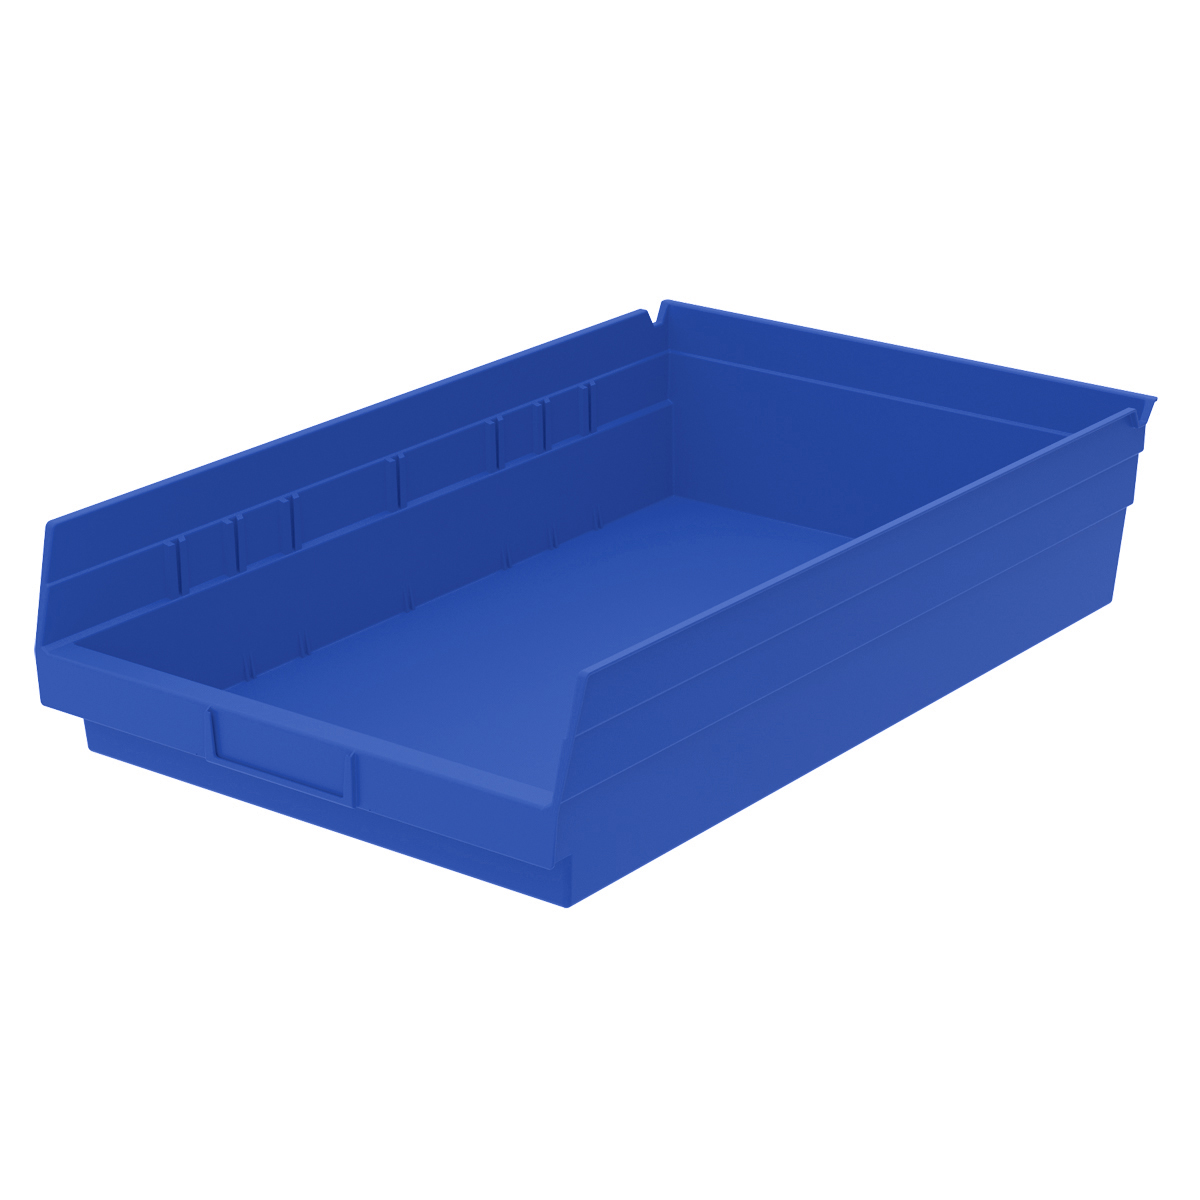 Shelf Bin 17-7/8 x 11-1/8 x 4, Blue (30178BLUE).  This item sold in carton quantities of 12.